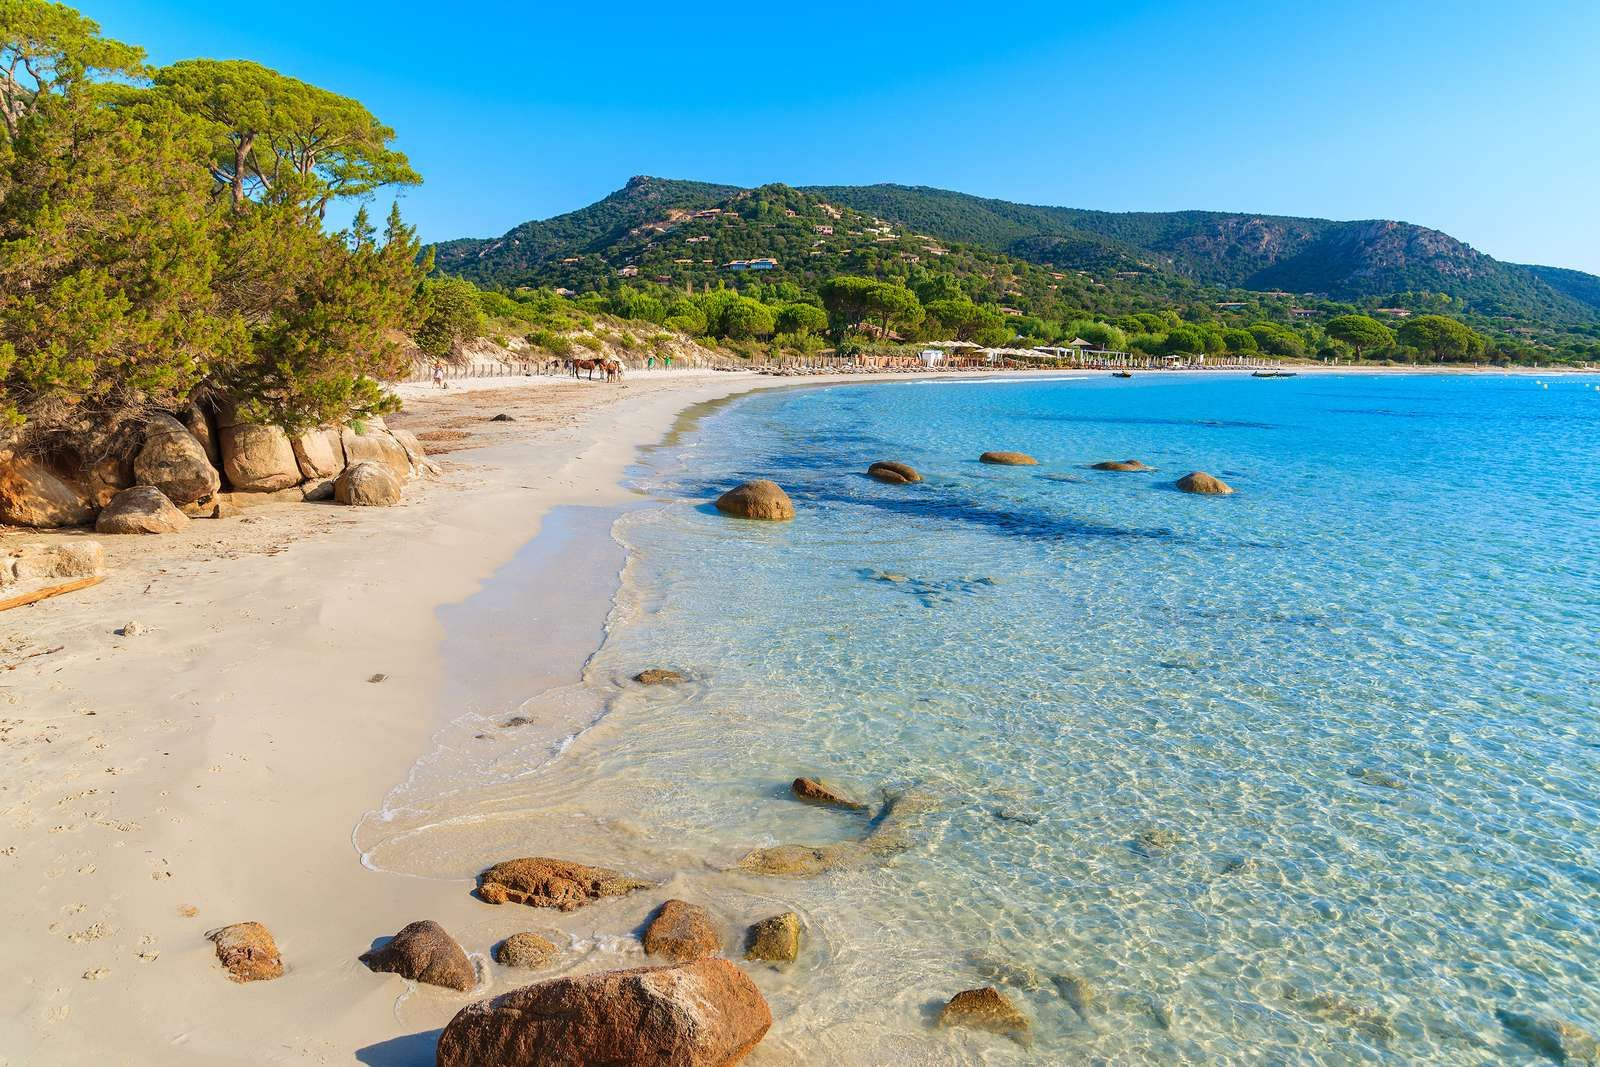 Corse plage Palombaggia